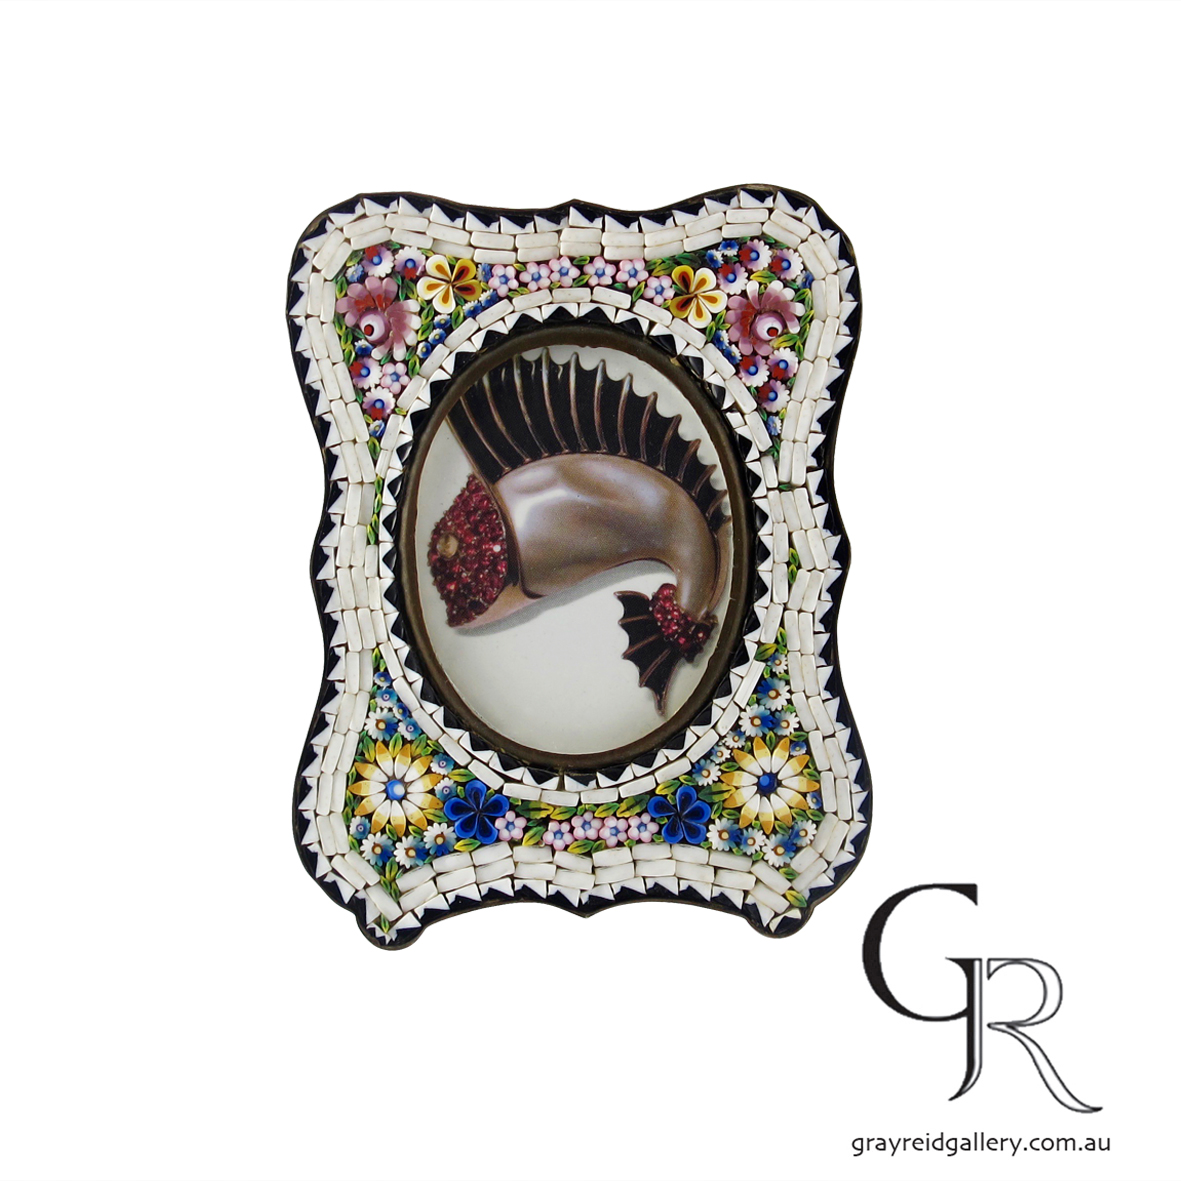 antiques and collectables melbourne micro mosaic picture frame Gray Reid Gallery 9.jpg